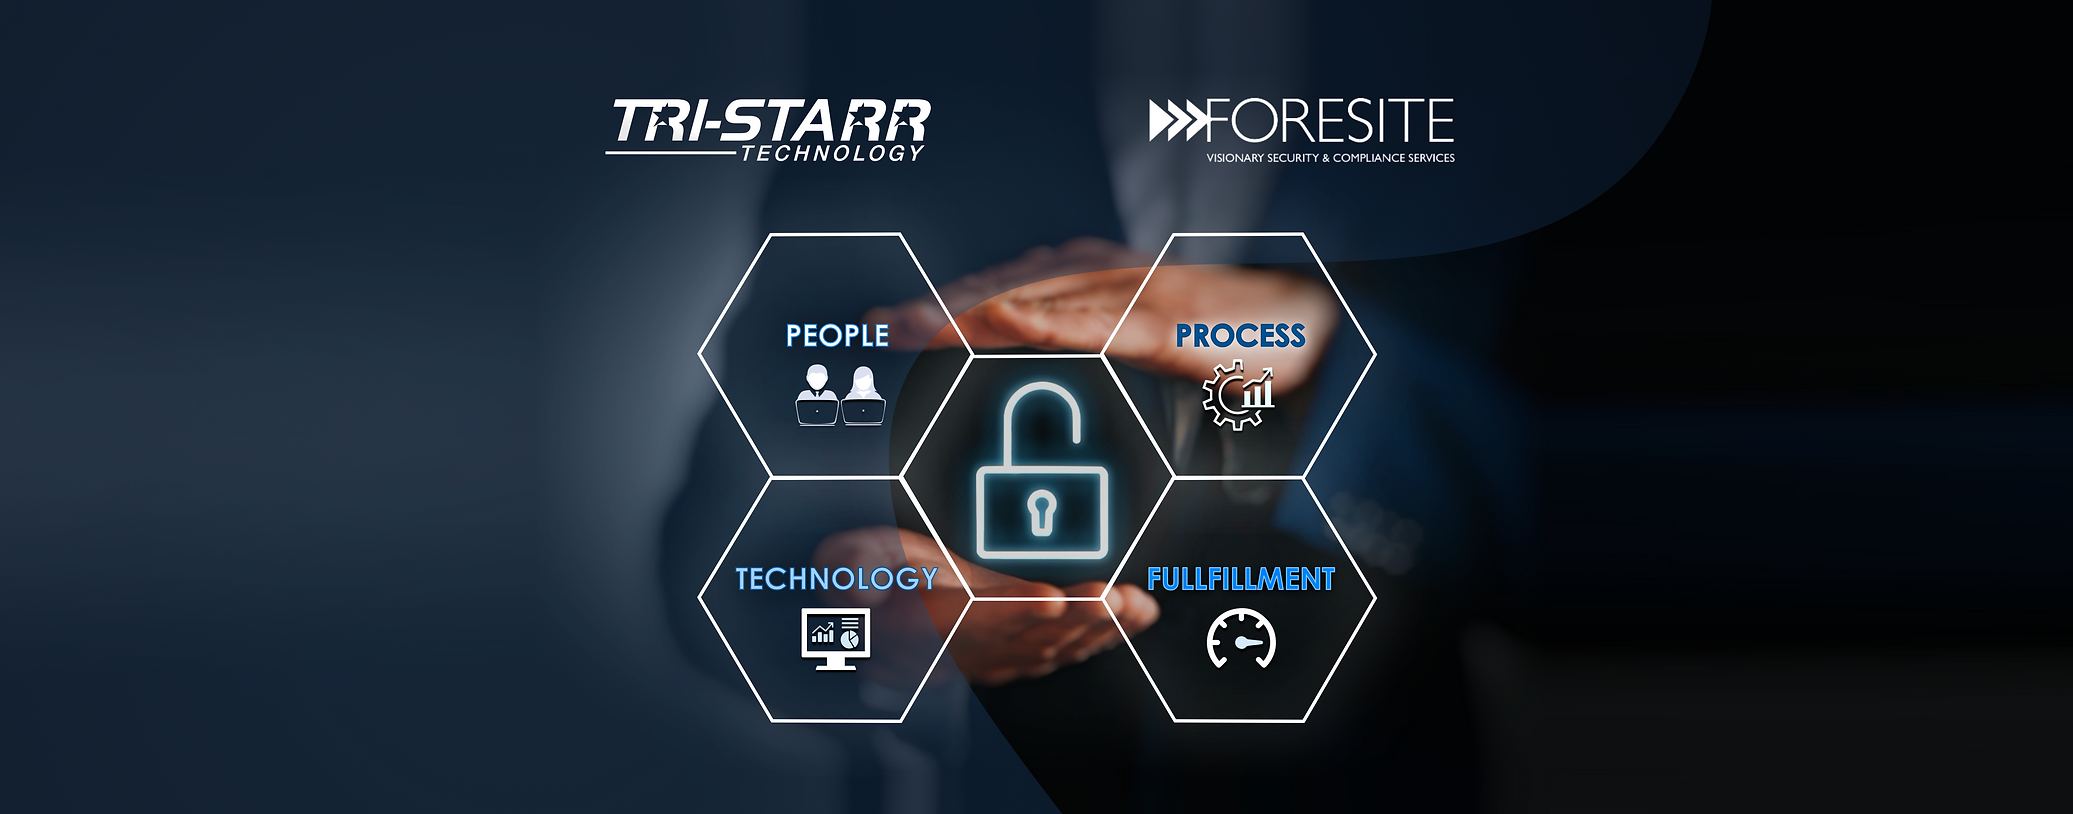 tristarr foresite partnership 2.png